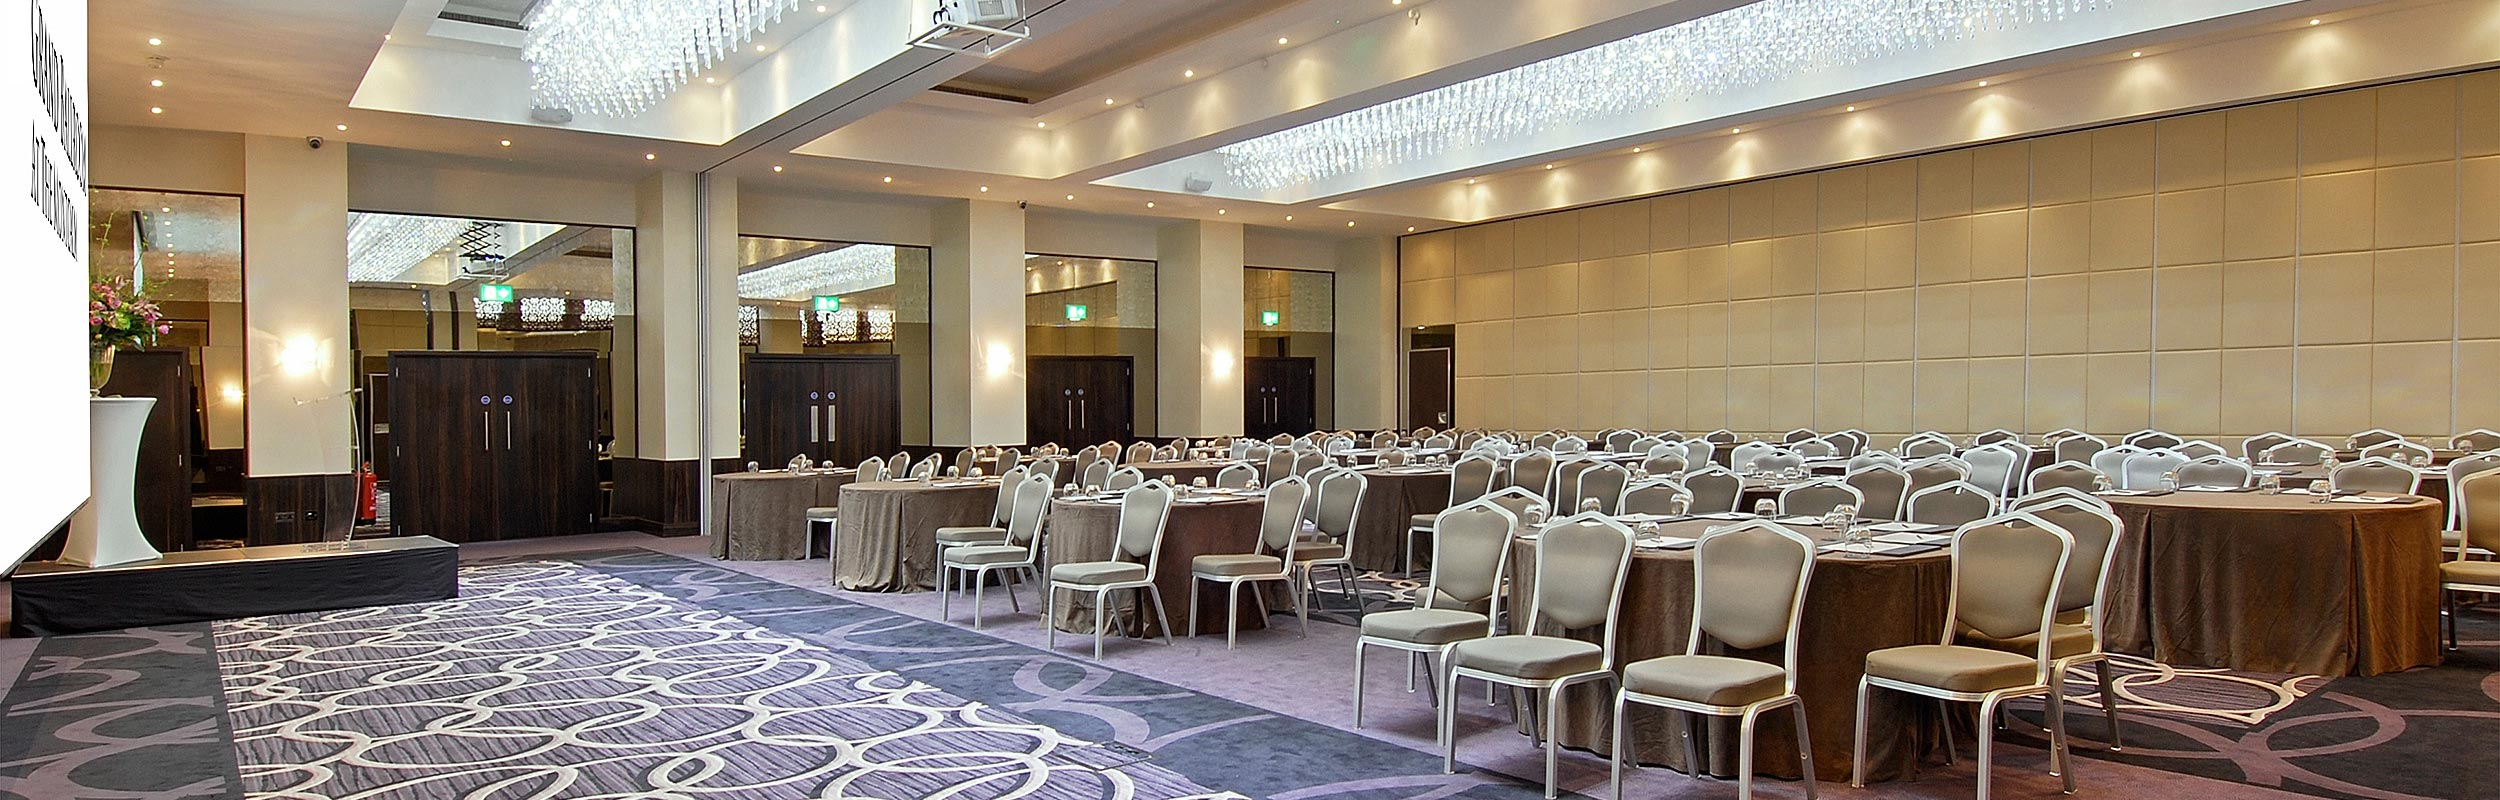 The Grand Ballroom at The Montcalm